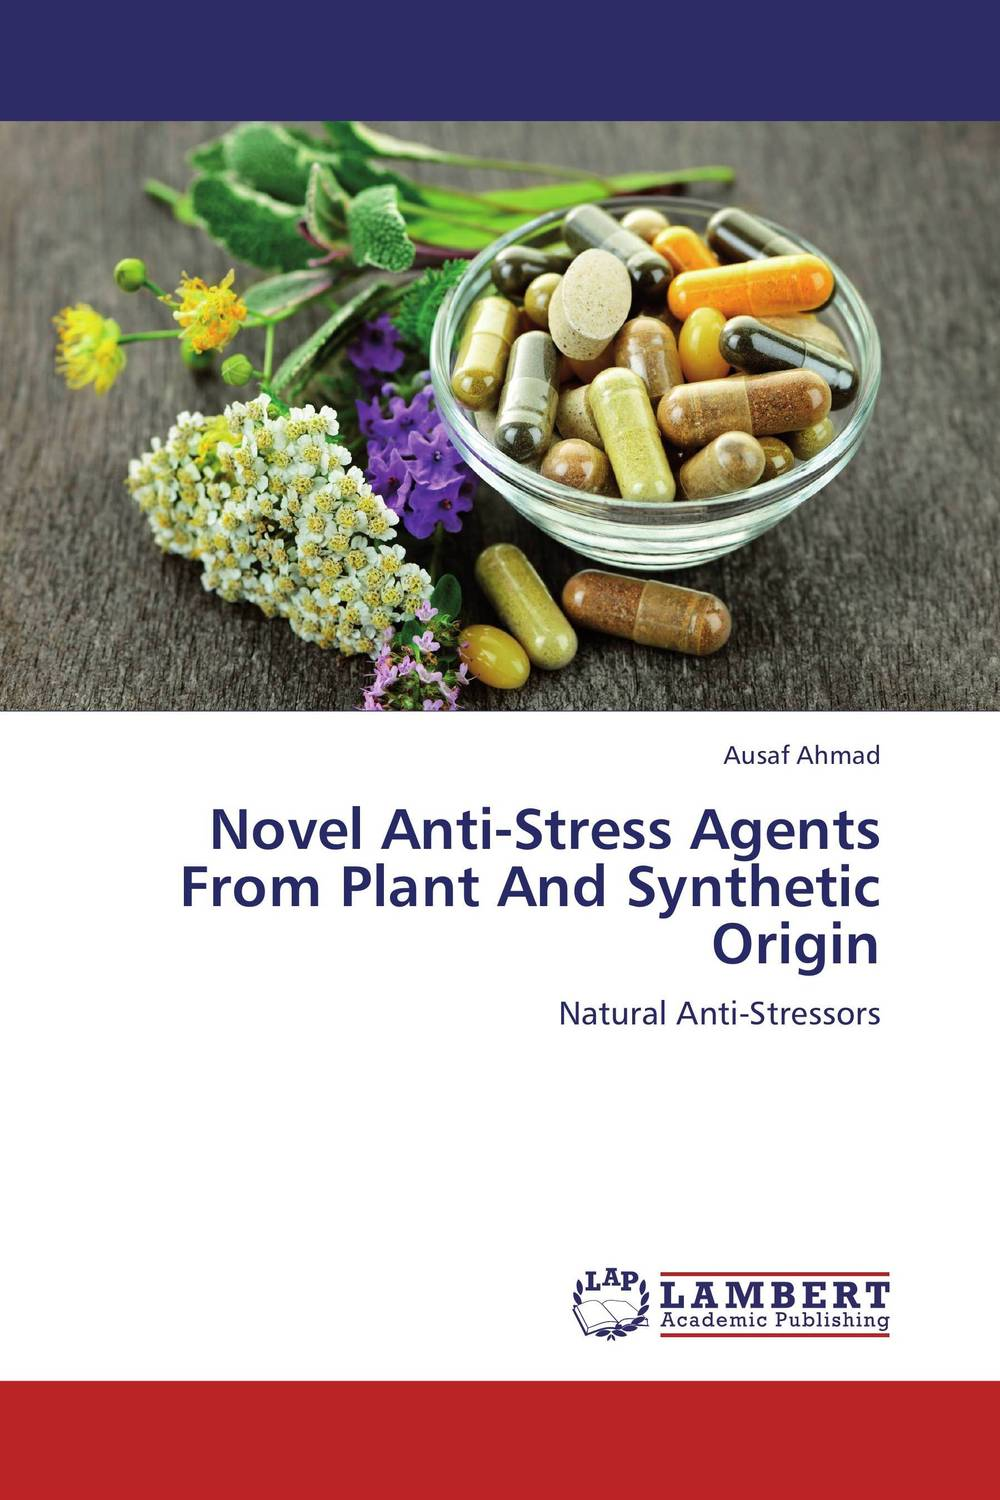 Novel Anti-Stress Agents From Plant And Synthetic Origin deciphering the role of yap4 phosphorylation under stress conditions